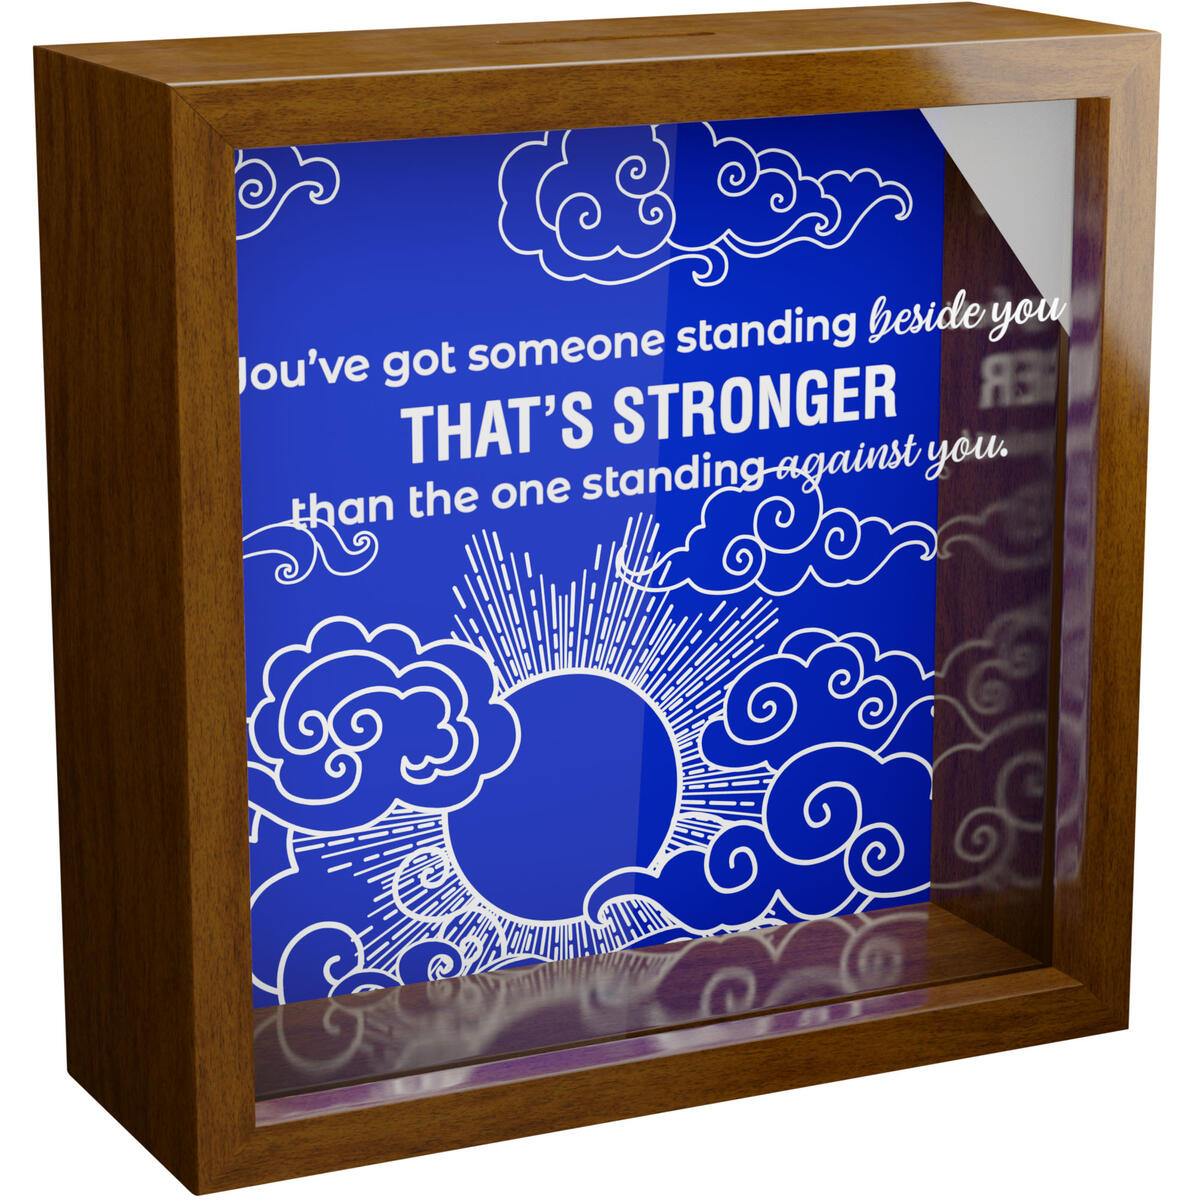 Christian Gifts for Men   Inspirational 6x6x2 Memorabilia Shadow Box   Wood Keepsake with Glass Front for Man of God   Religious Wall Decor   Spiritual Framed Quotes for Home Decoration